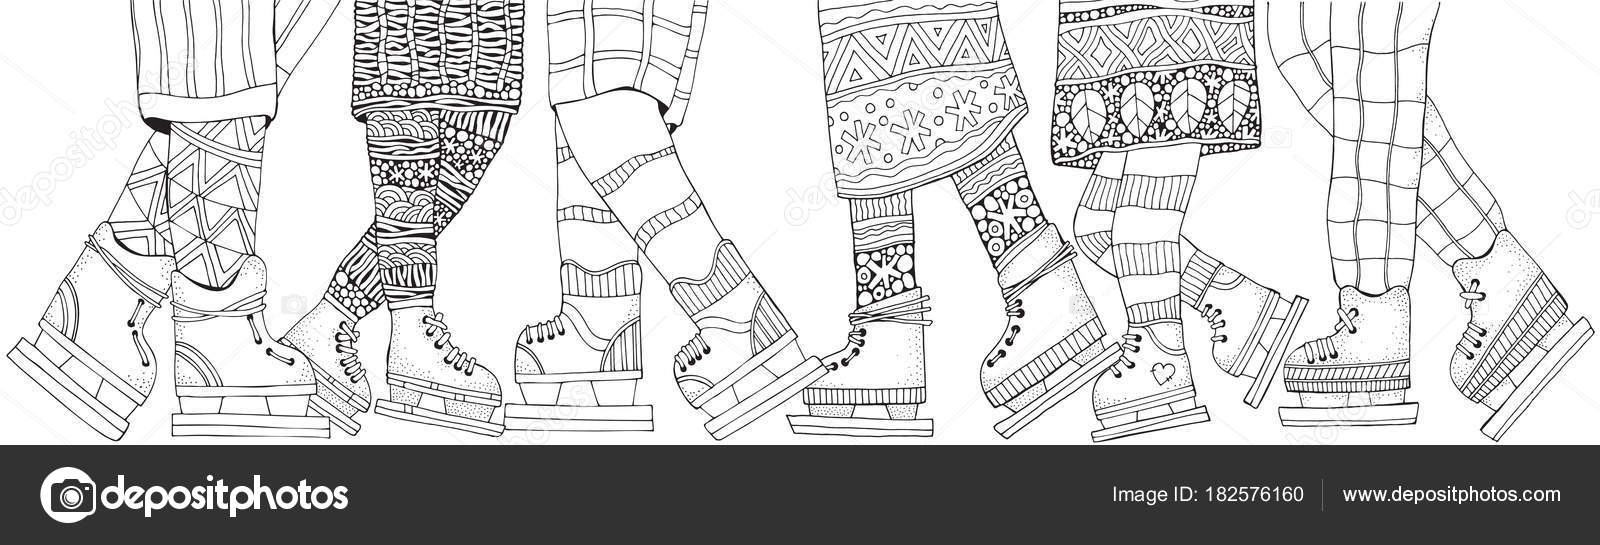 Adult Coloring Book Page Hand Drawn Vector Illustration Horizontal Pattern For With Legs Scandinavian Style Black And White